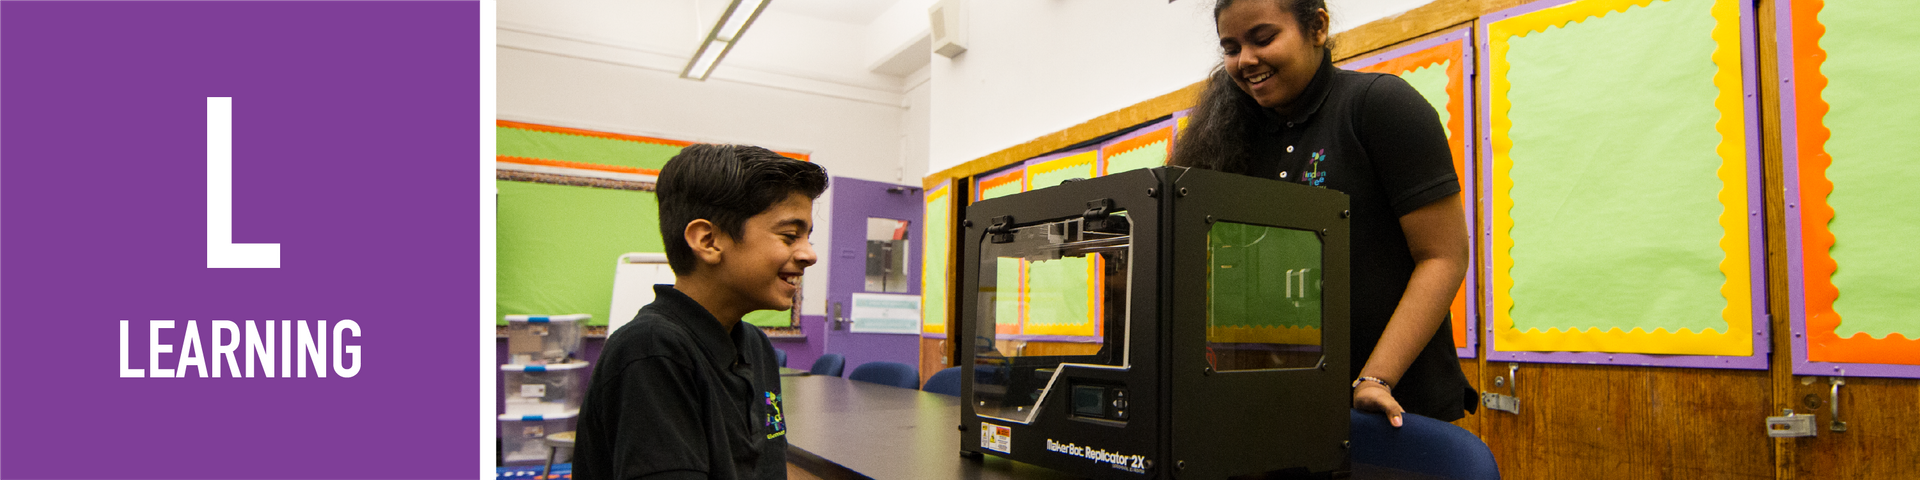 Learning: using 3D printer